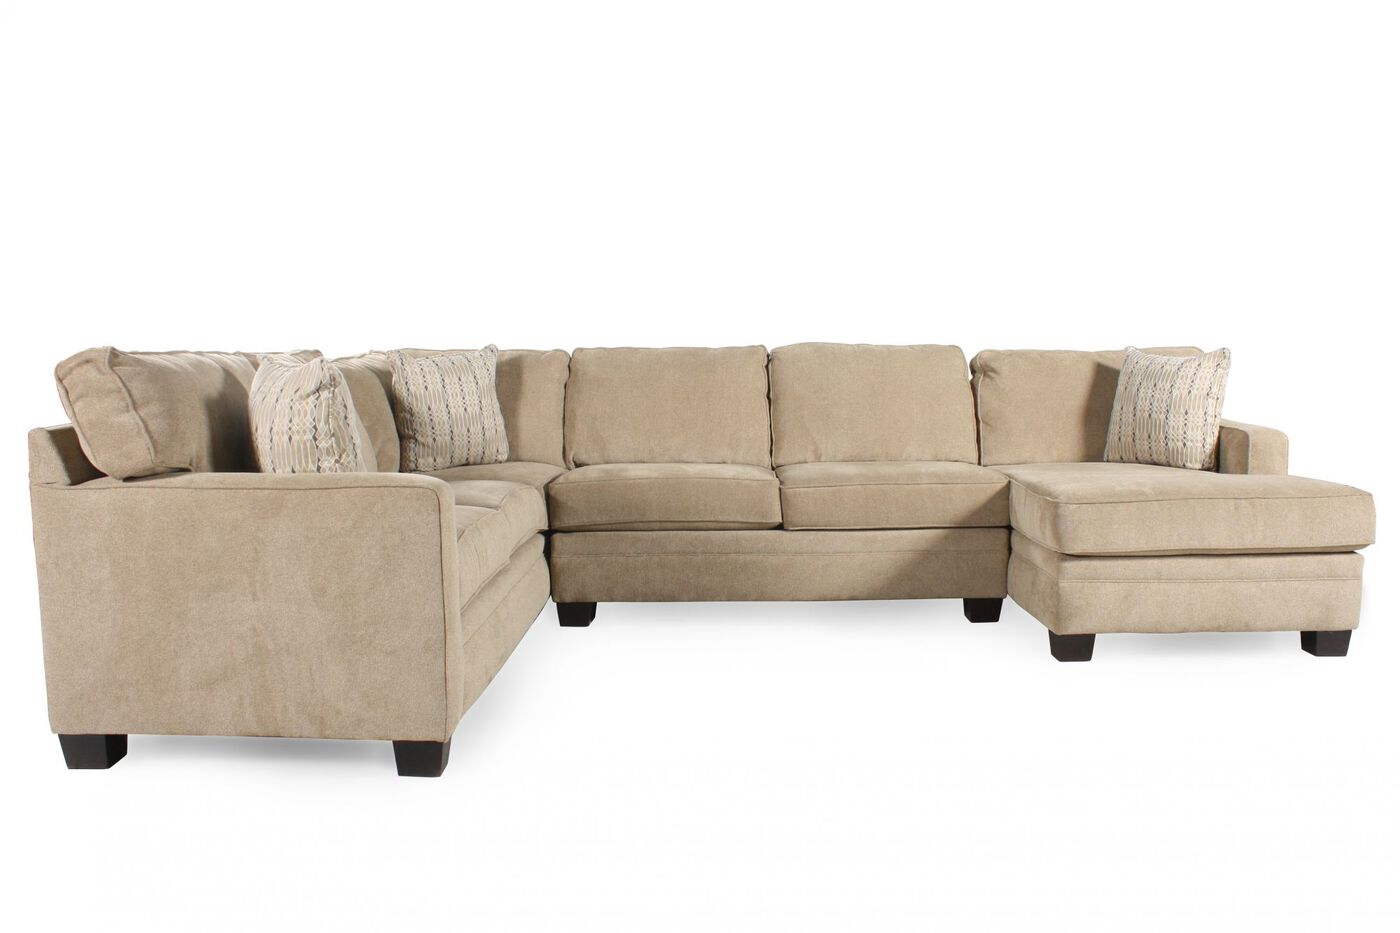 Broyhill choices sectional mathis brothers furniture for Broyhill furniture